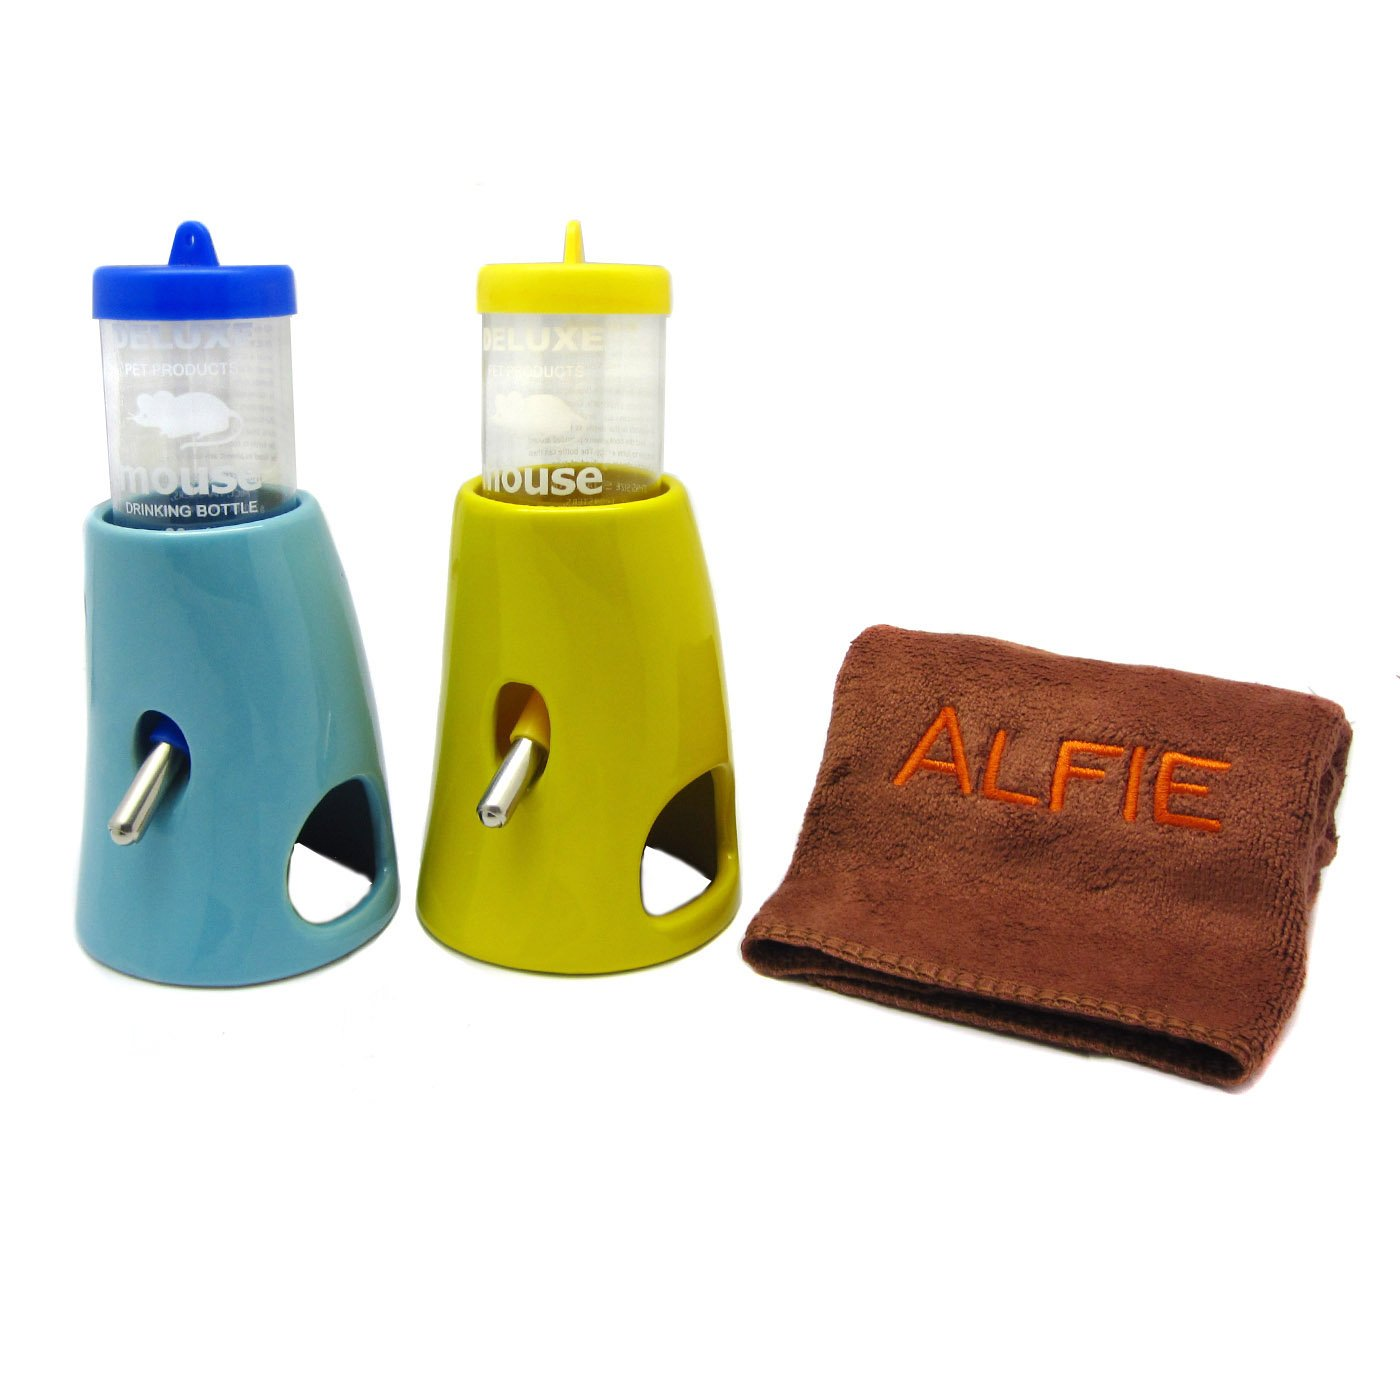 Alfie Pet - 2-in-1 Water Bottle with Ceramic Base Hut 2-Pieces Set with Microfiber Fast-Dry Washcloth for Small Animals Like Dwarf Hamster and Mouse